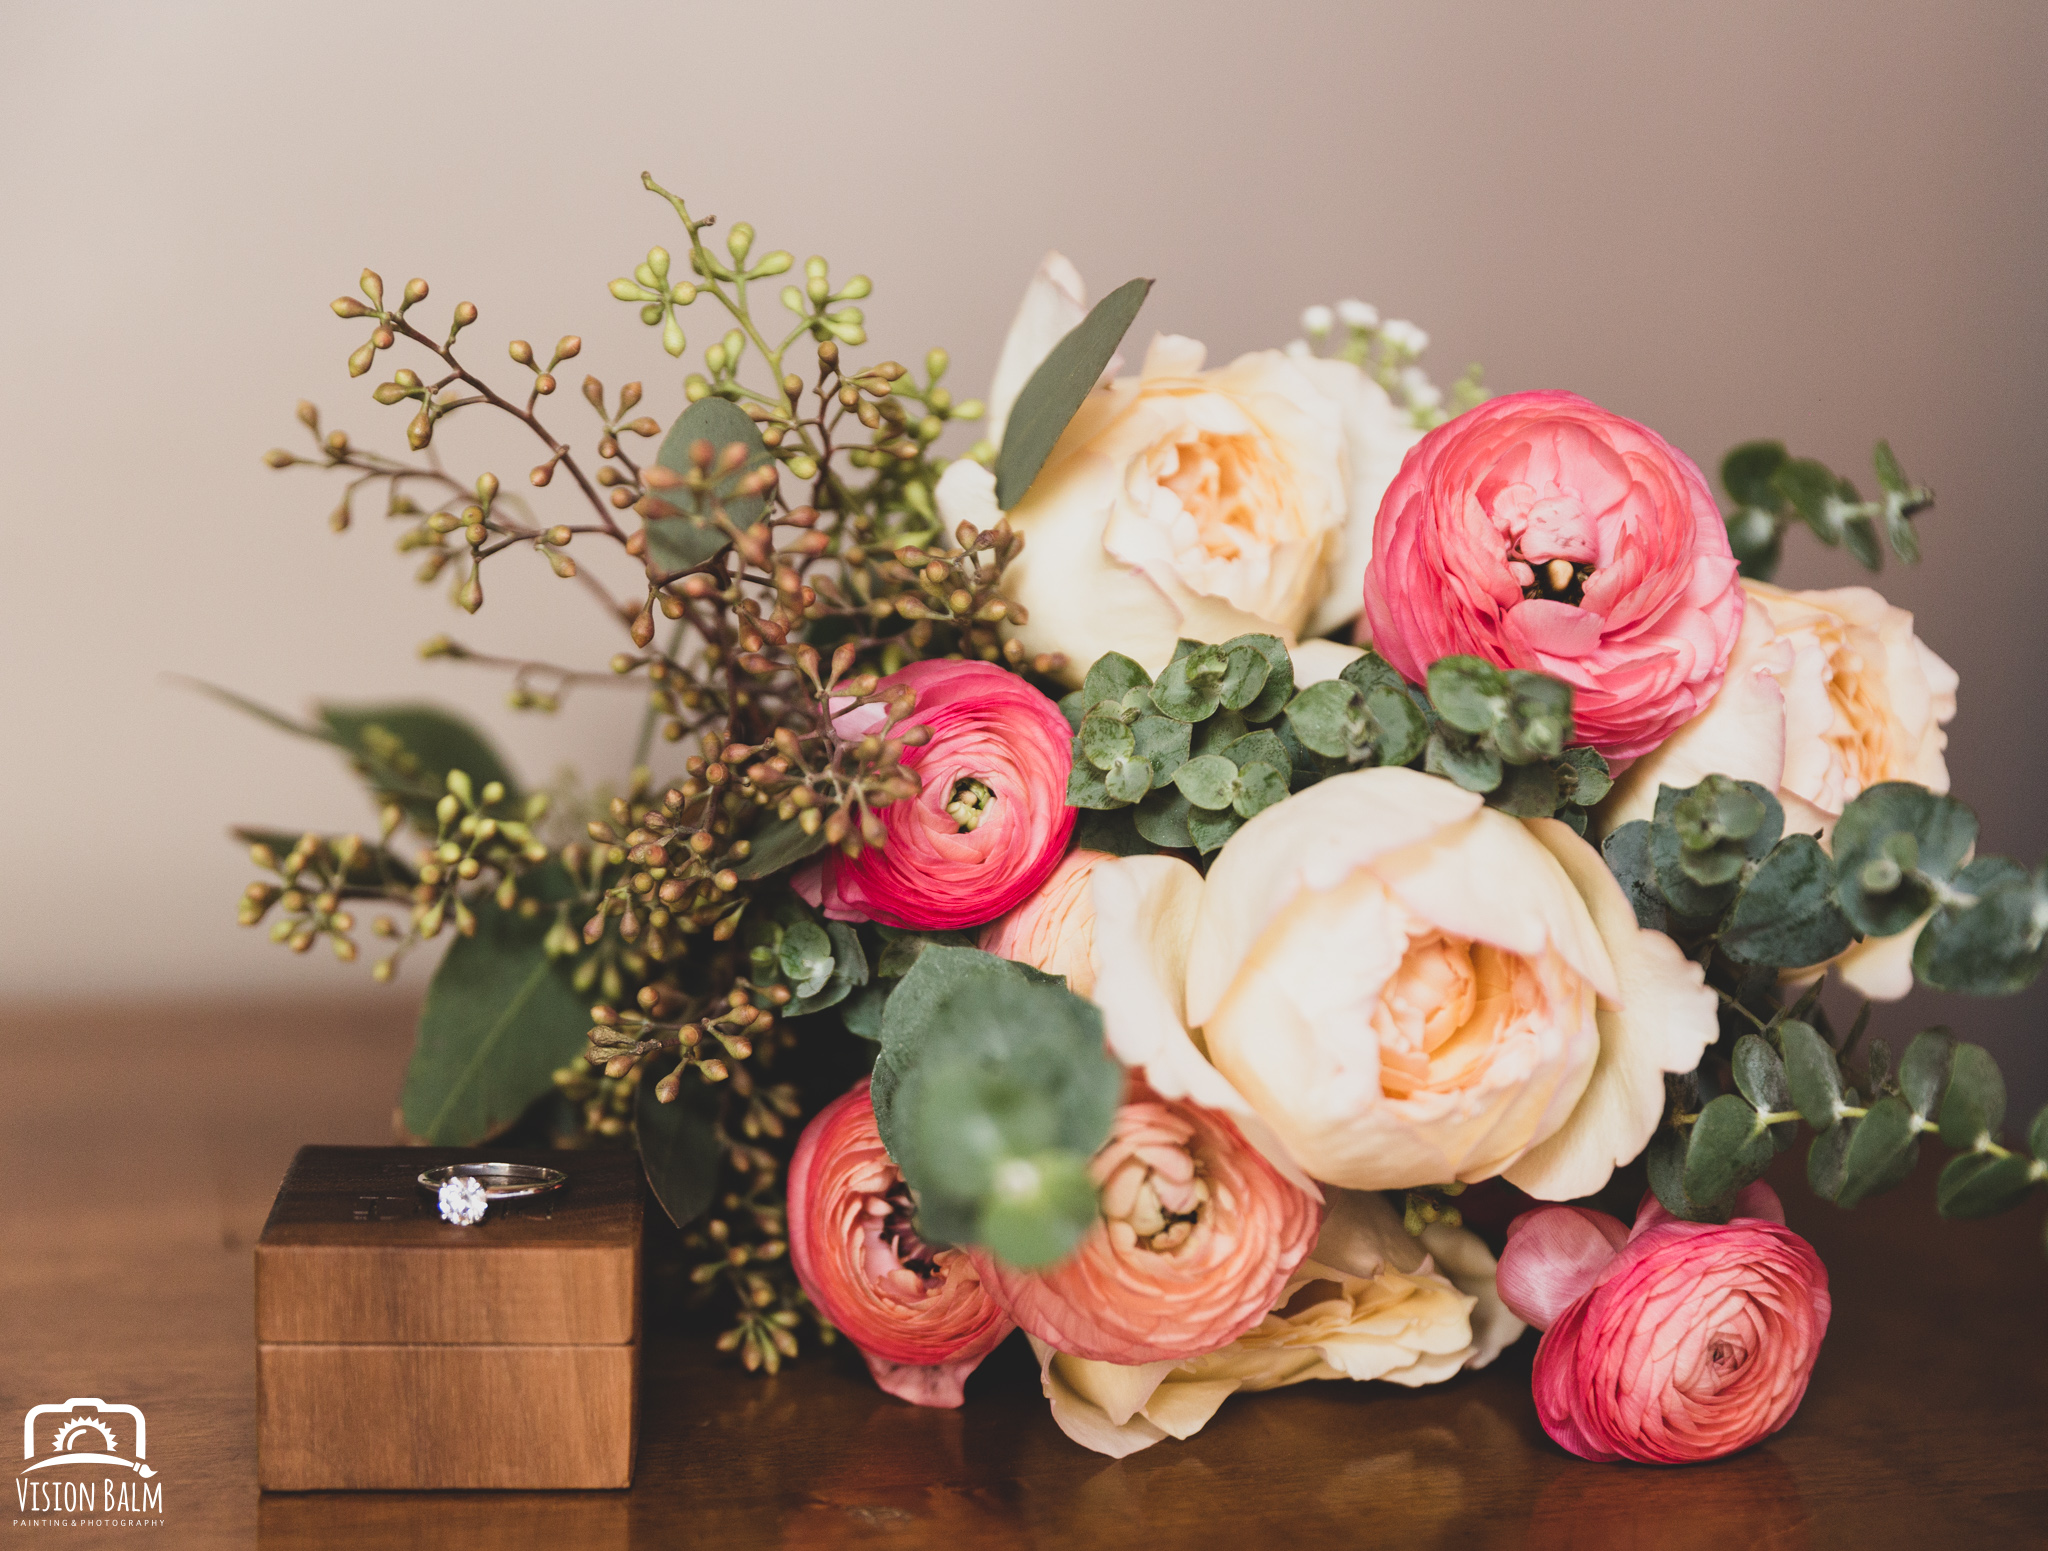 Wedding photo of bouquet of flowers next to wedding ring in Zuka's Hilltop Barn by Vision Balm in Charleston, SC.